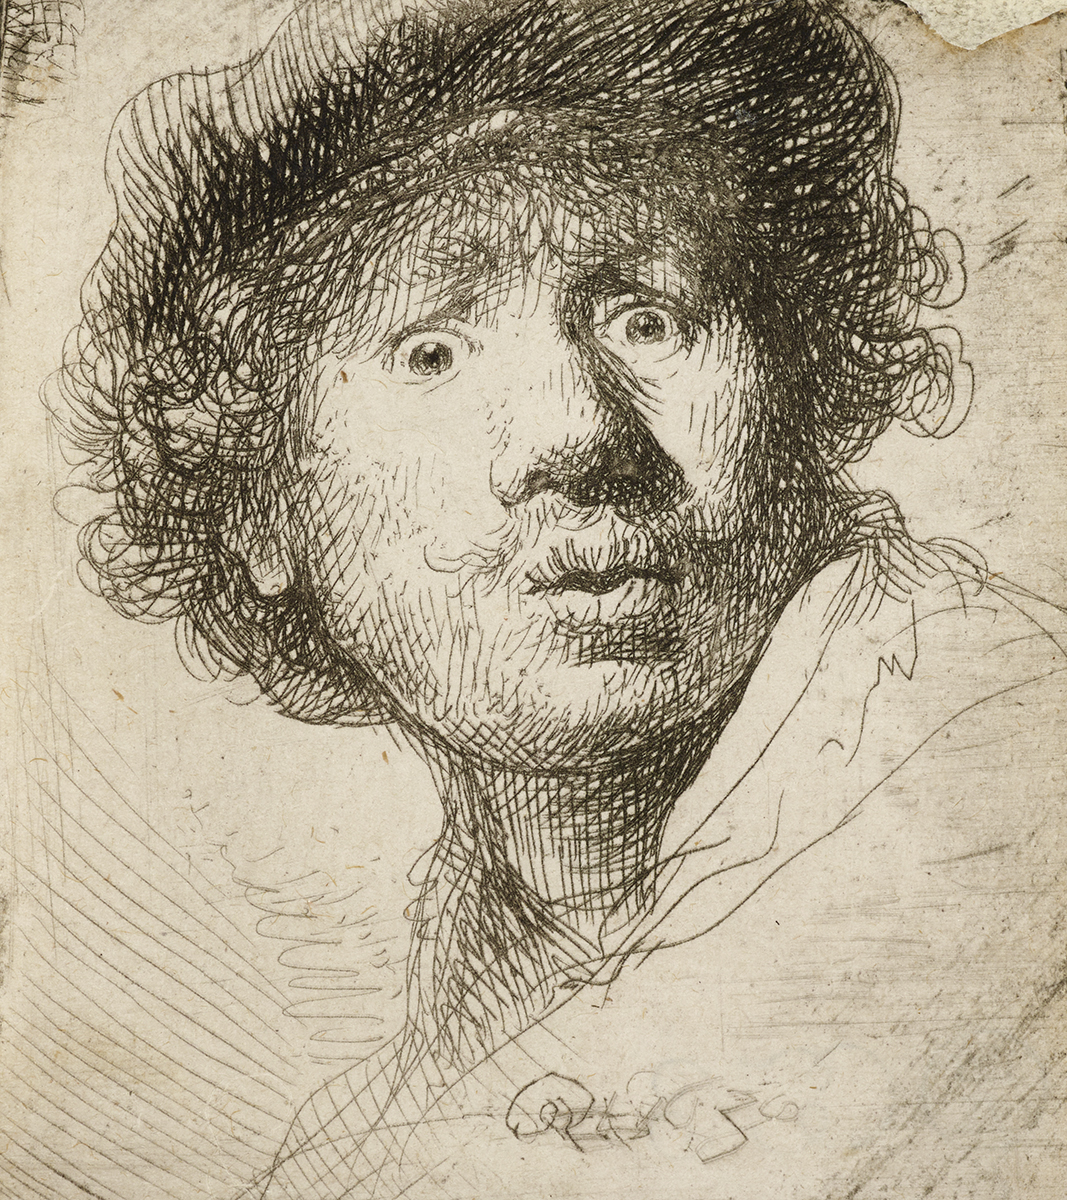 An etching of the artist Rembrandt pouting his lips with wide eyes and a furrowed brow, his expression shows surprise or fear.